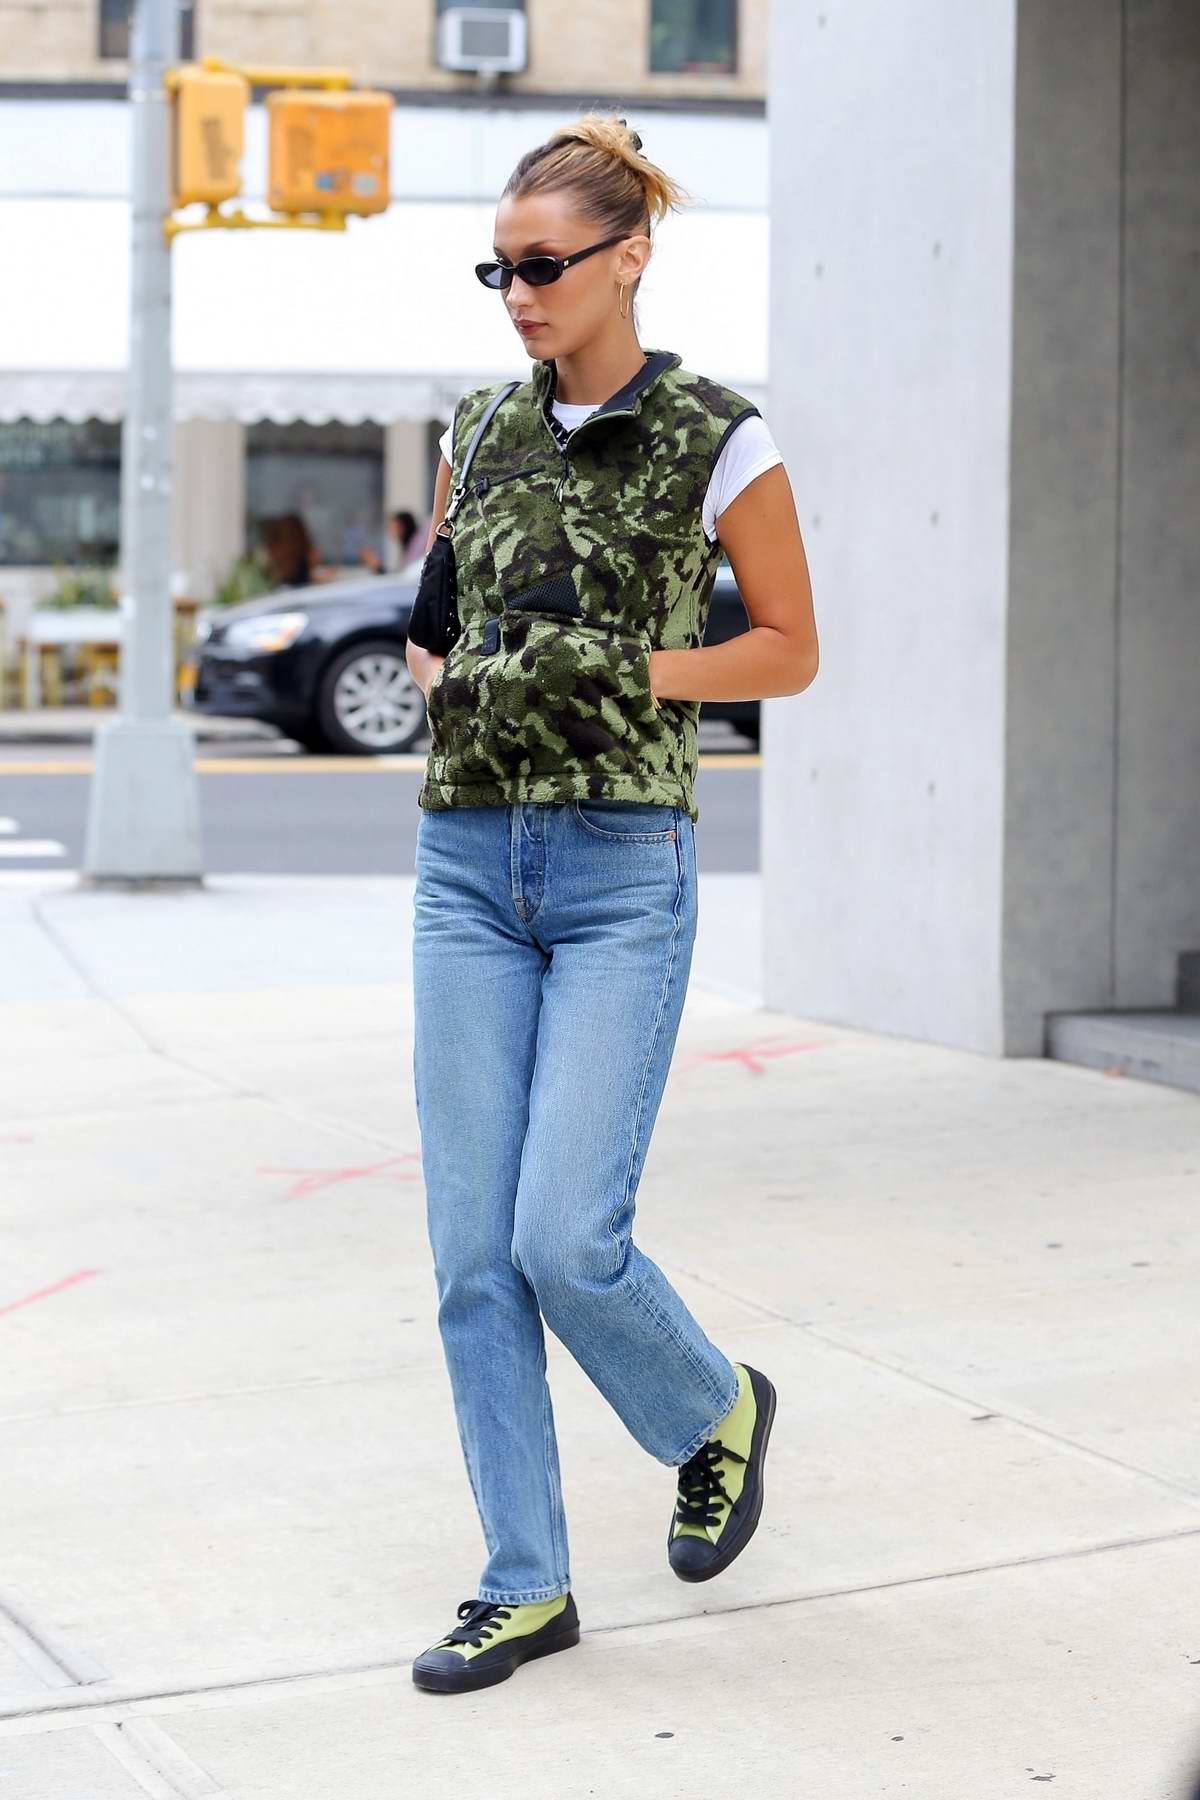 Bella Hadid keeps it casual in camo while running errands in New York City